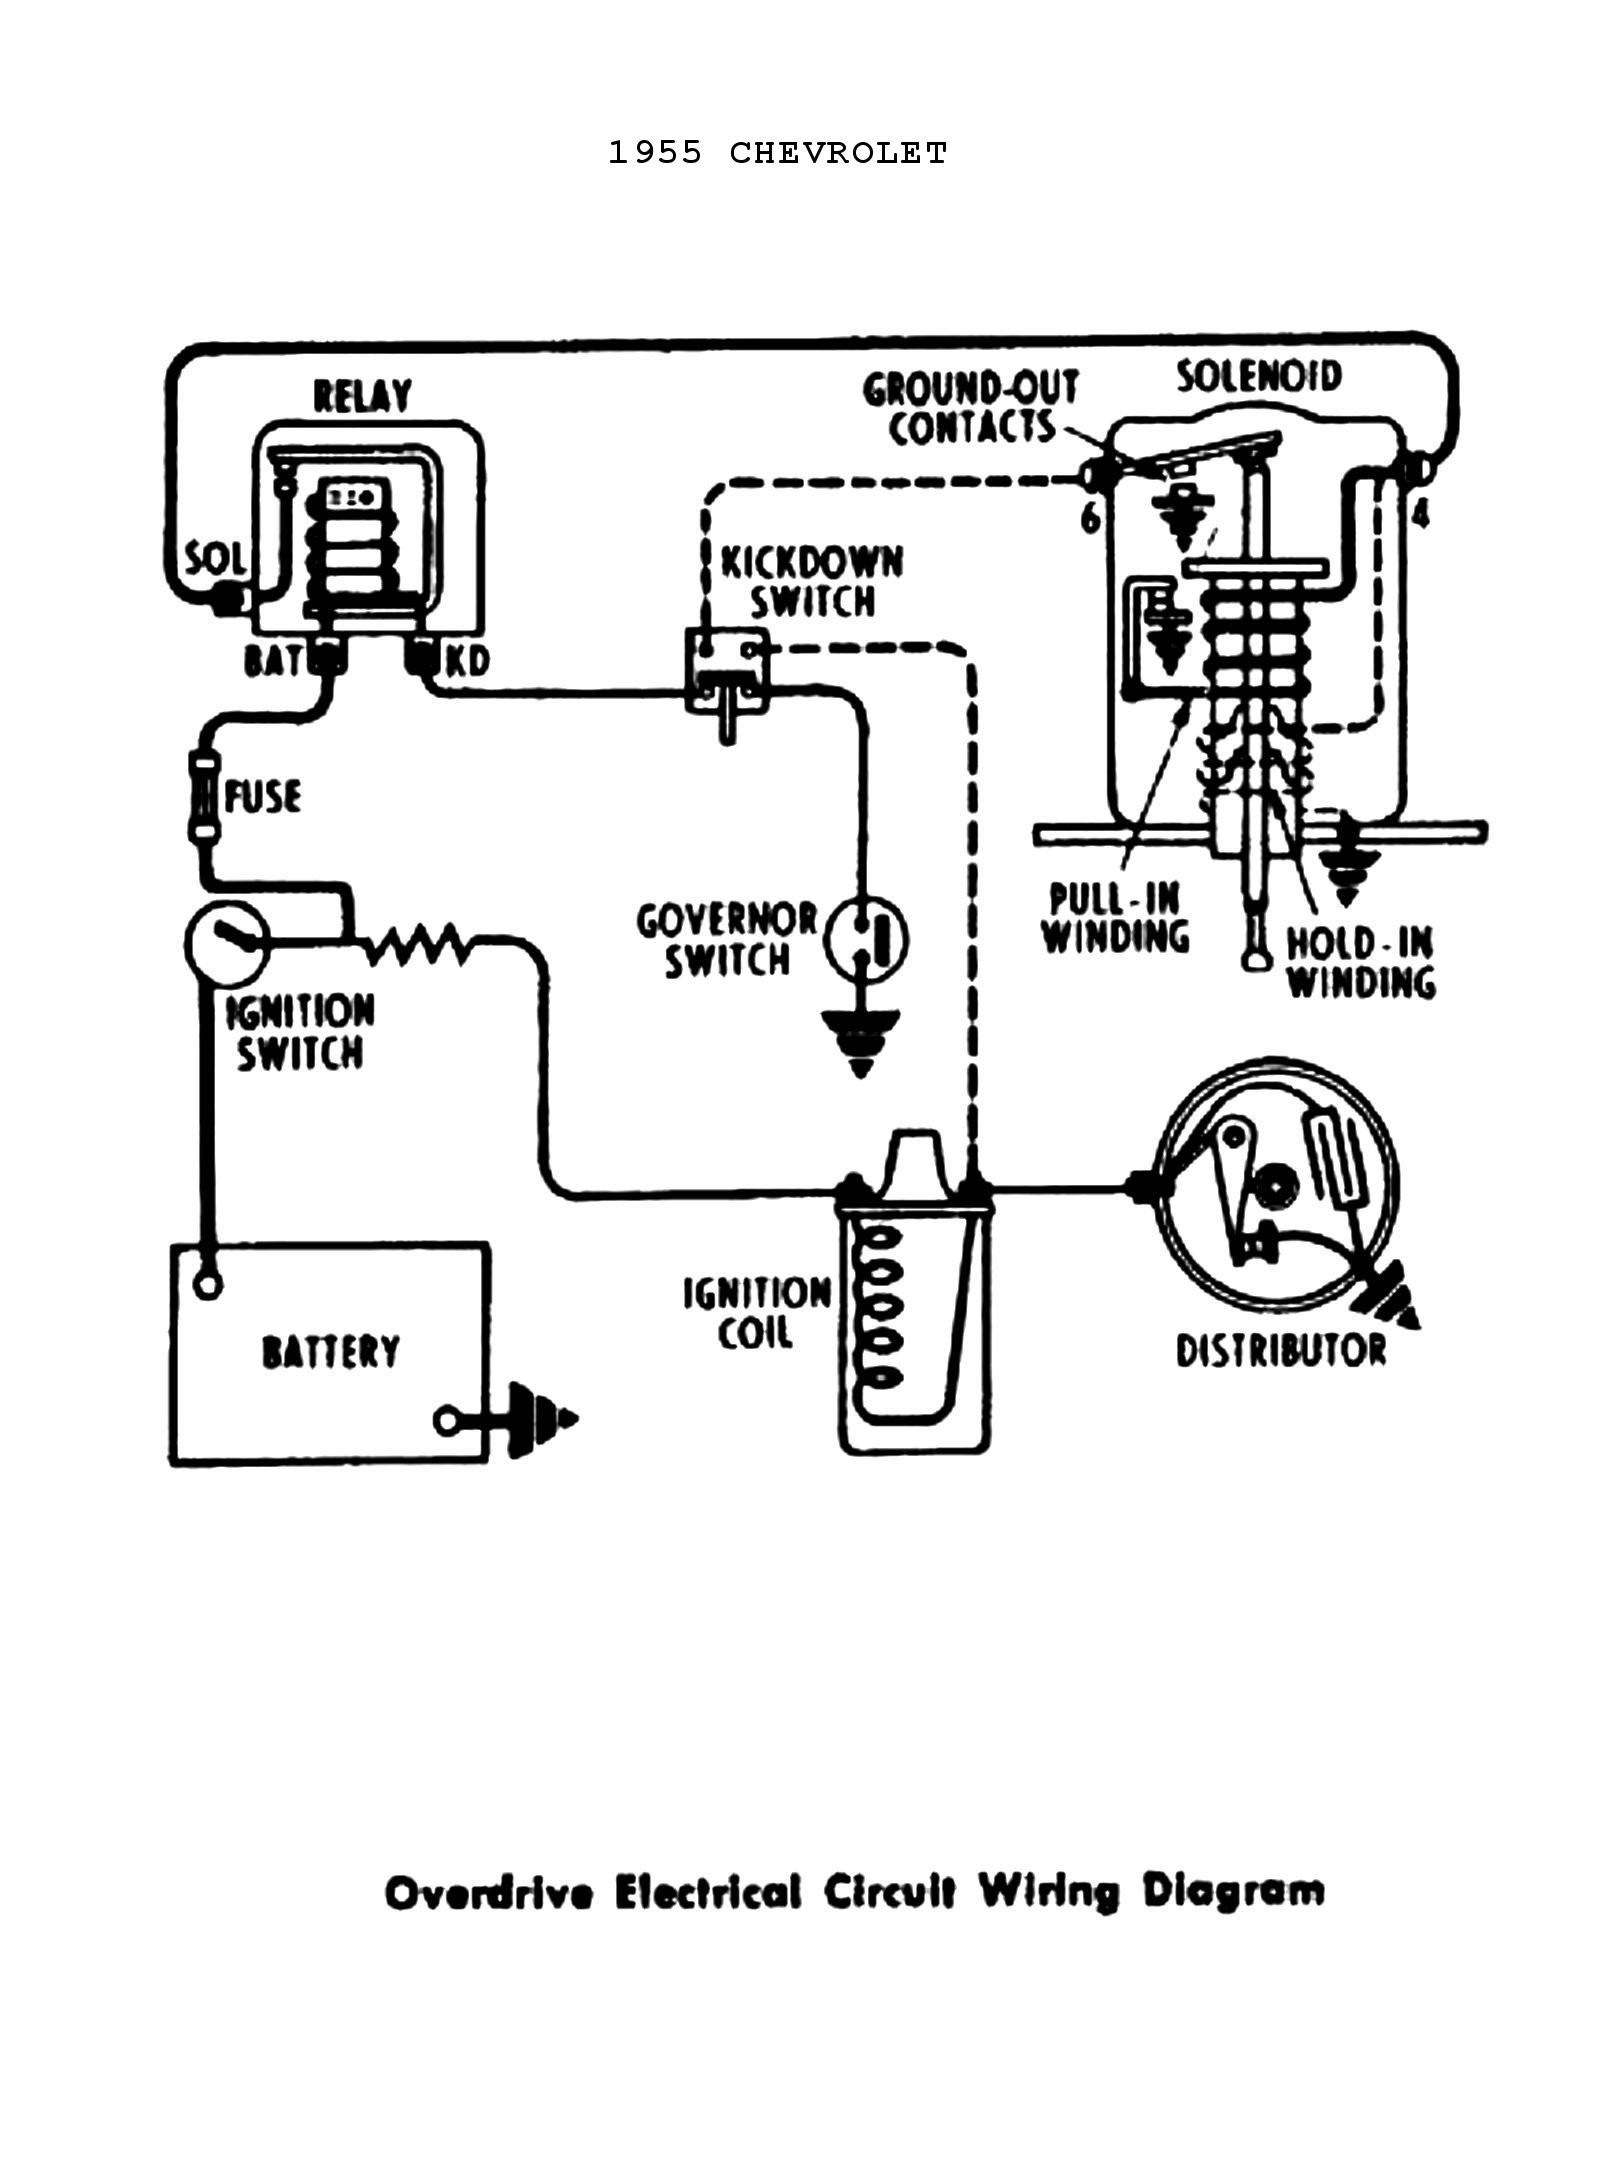 Car Electrical System Diagram Studebaker Technical Help Wiring Diagrams Chevy Of Studebakerparts